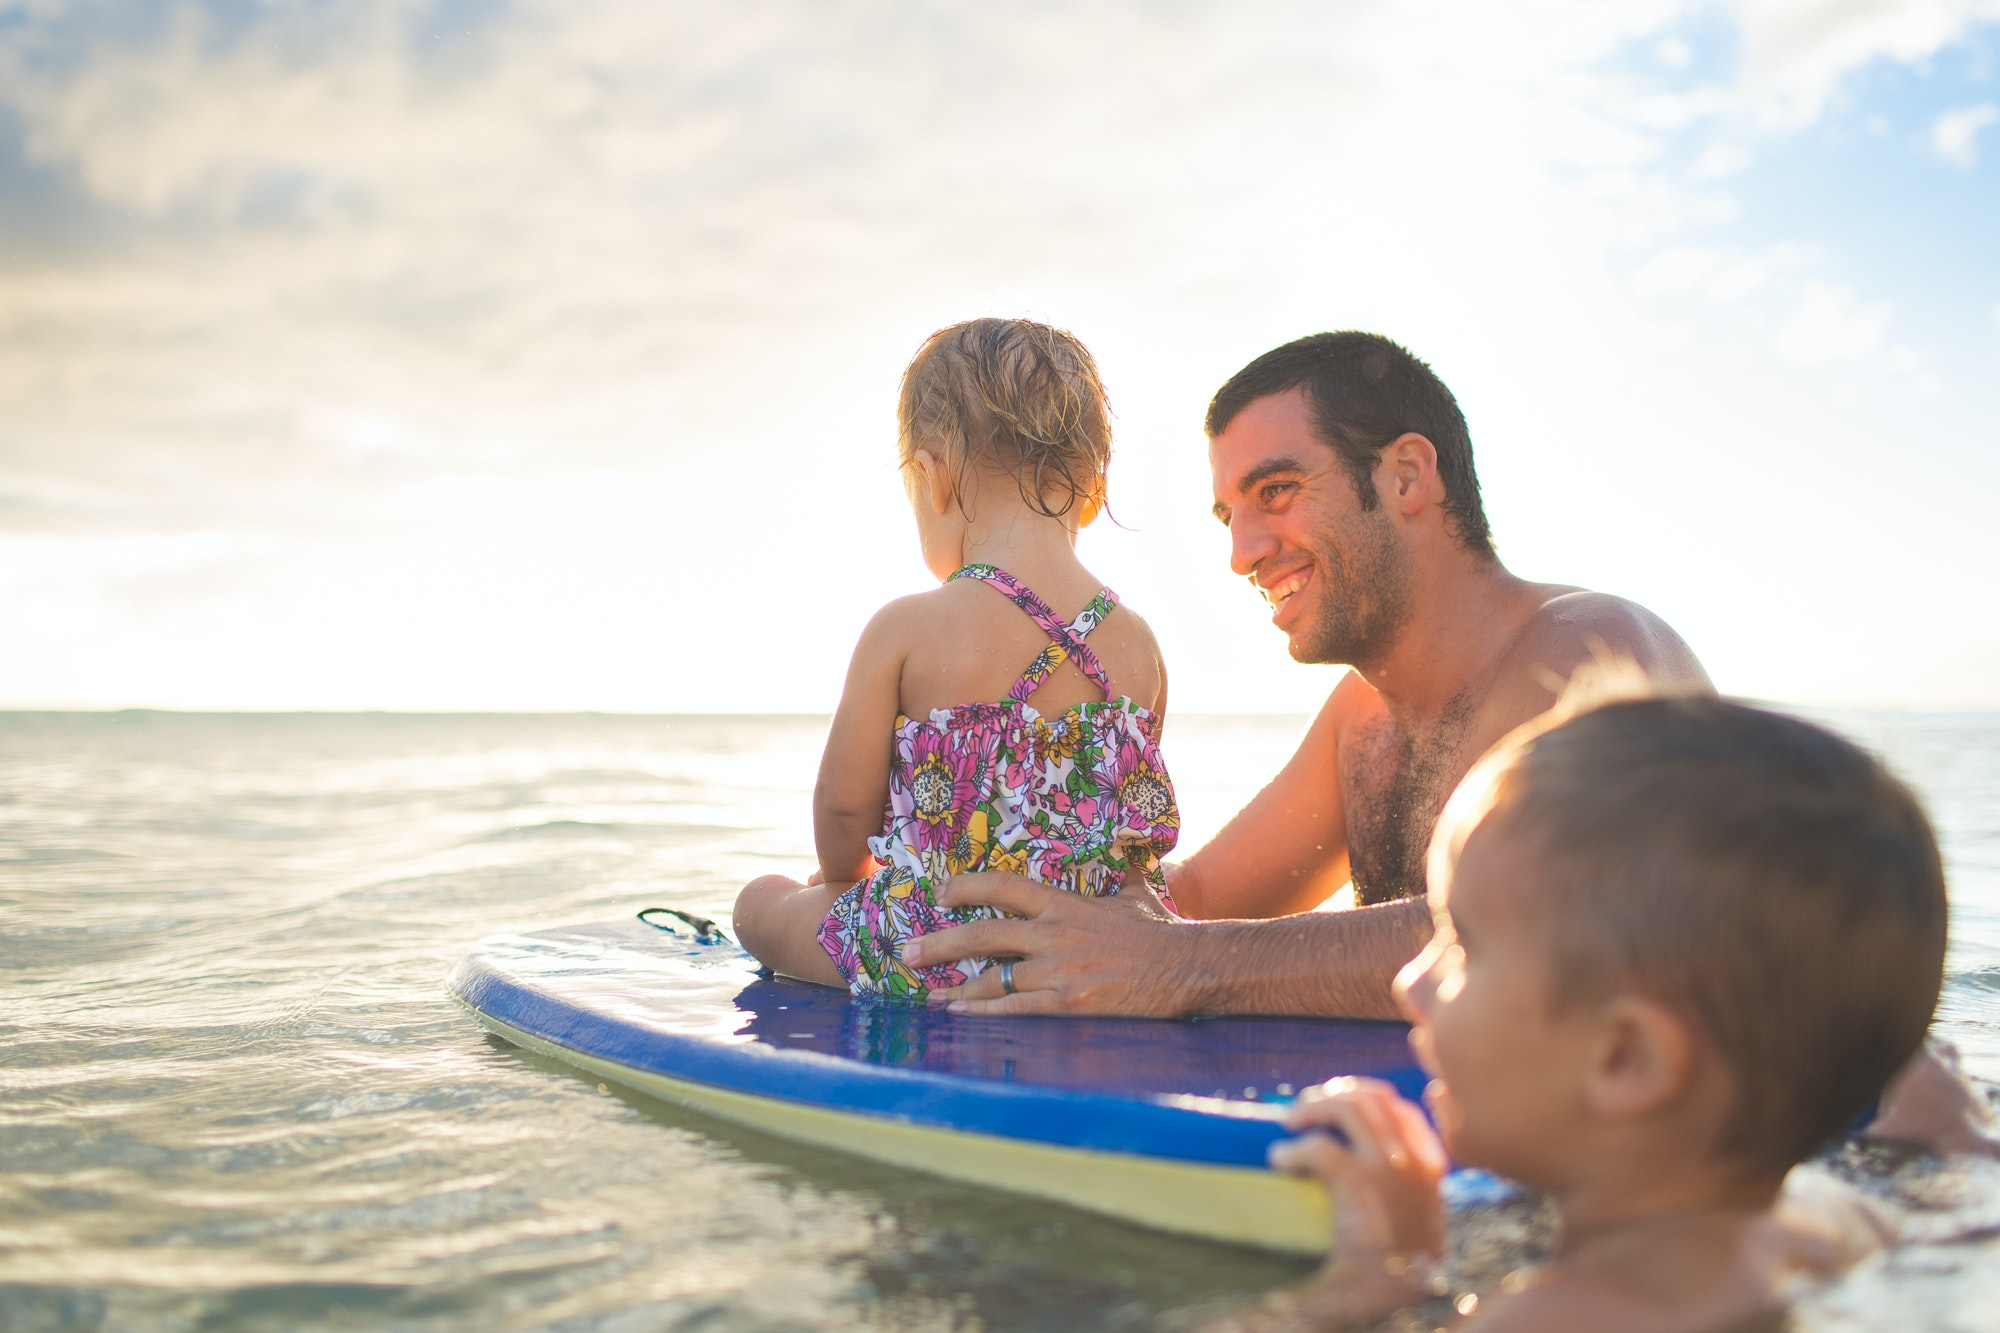 Dad and kids on boogie board in the ocean